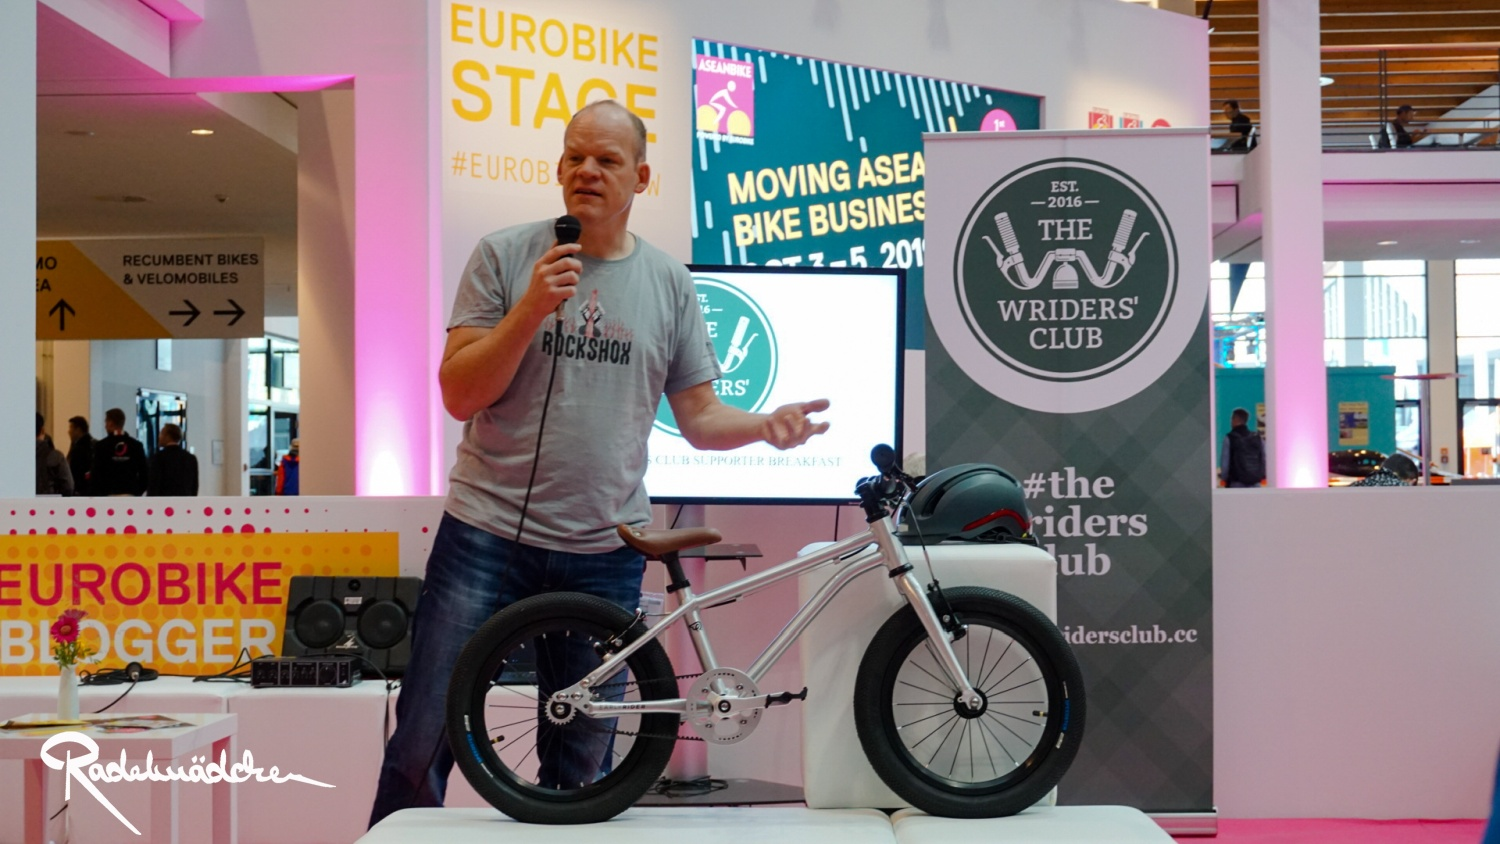 The Wriders' Club woom bike,Eurobike 2019